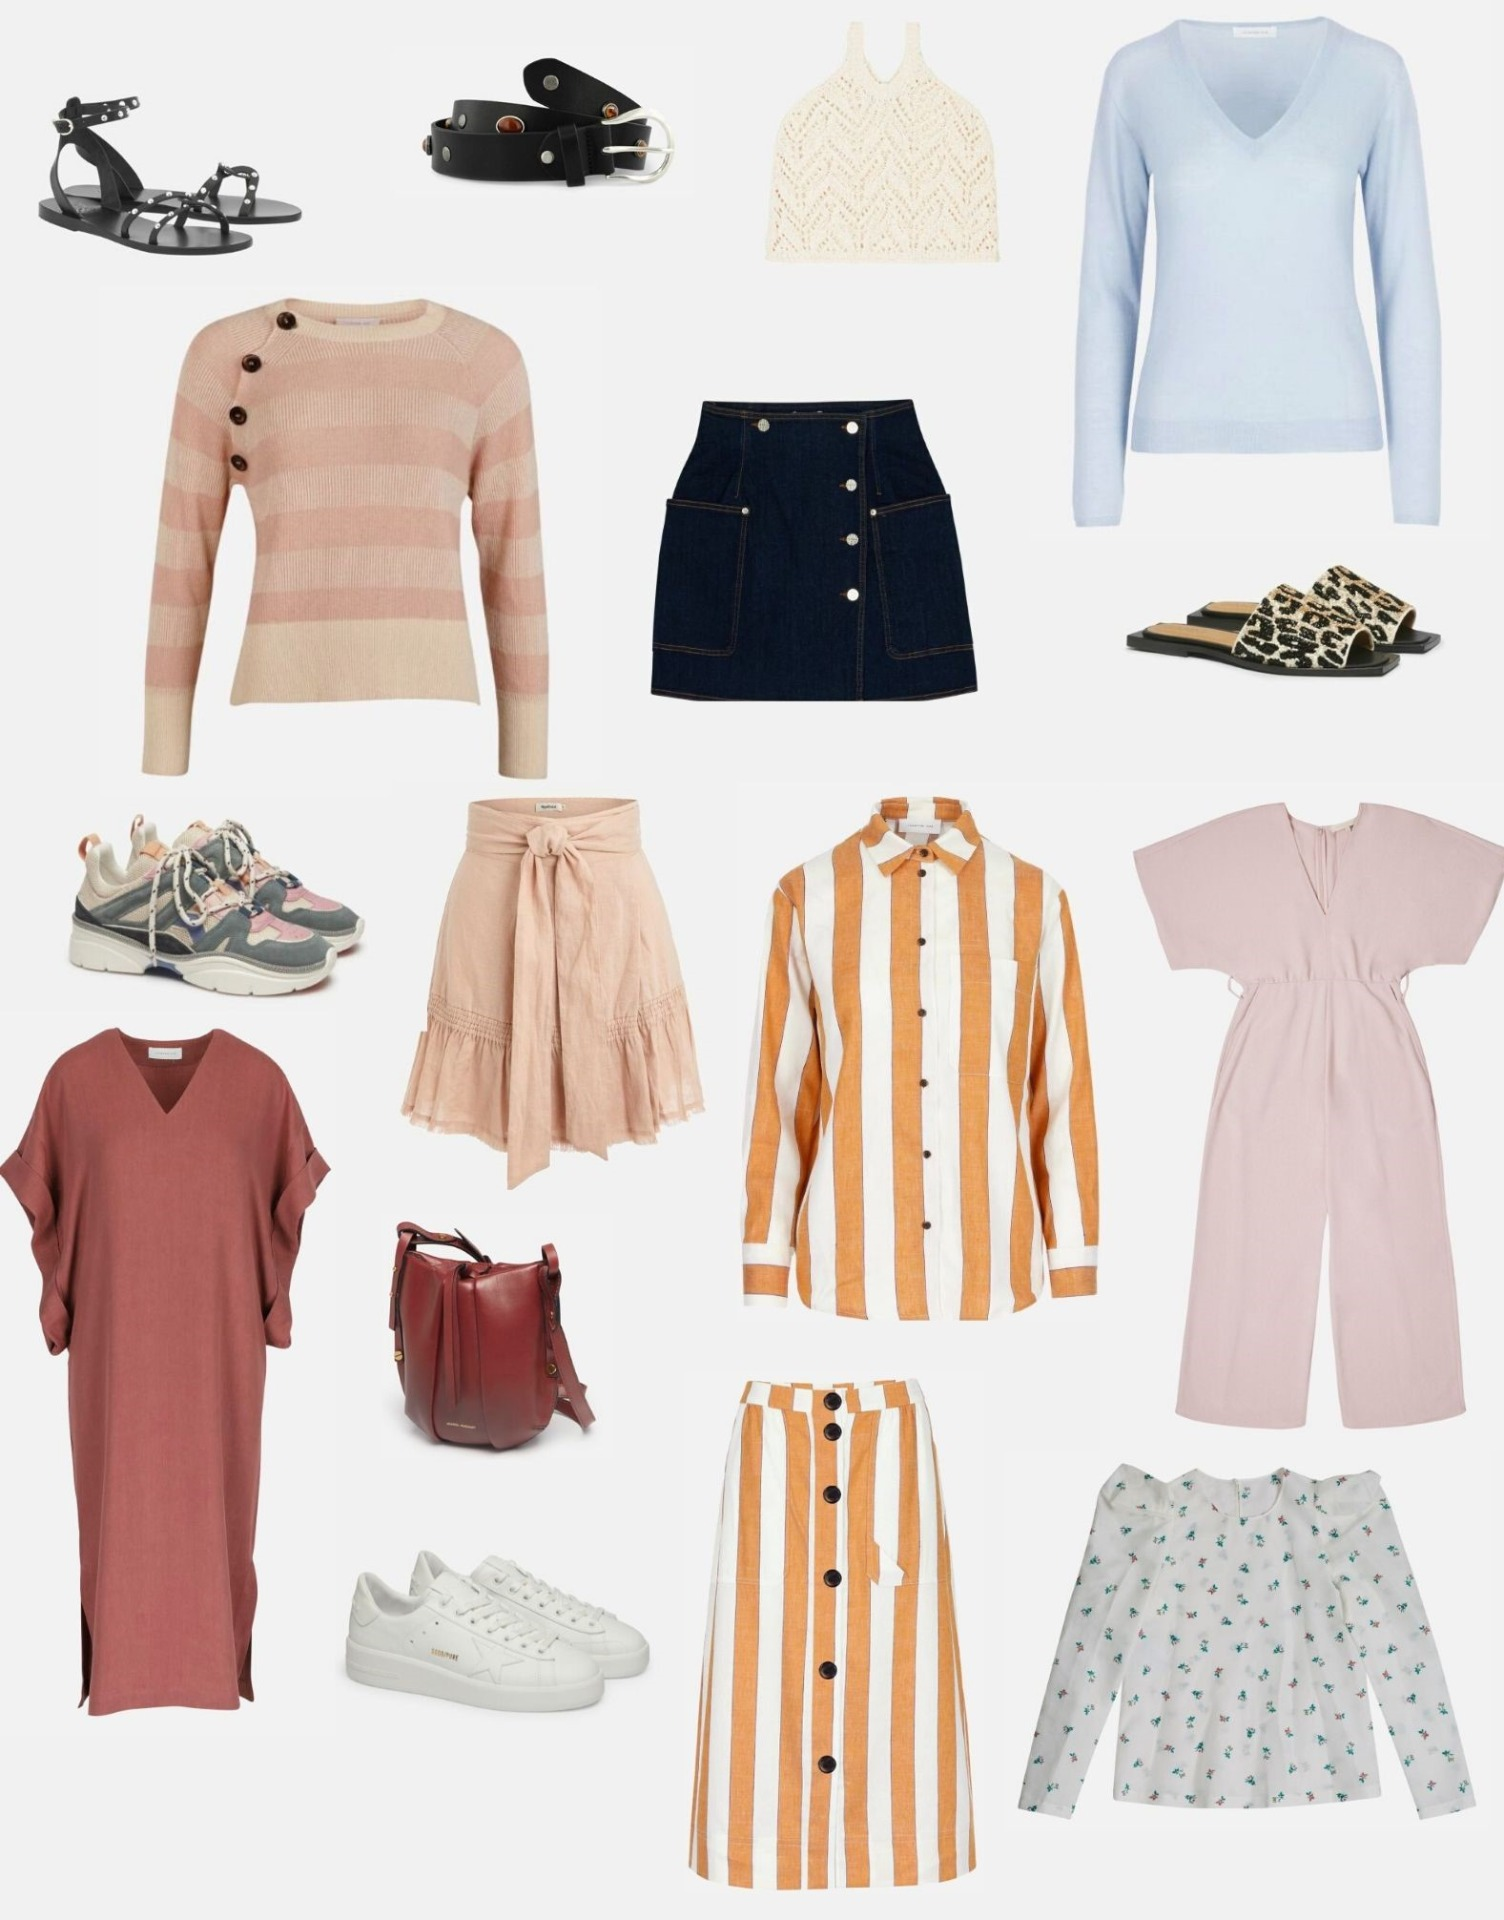 9 styles selected by Nele 1